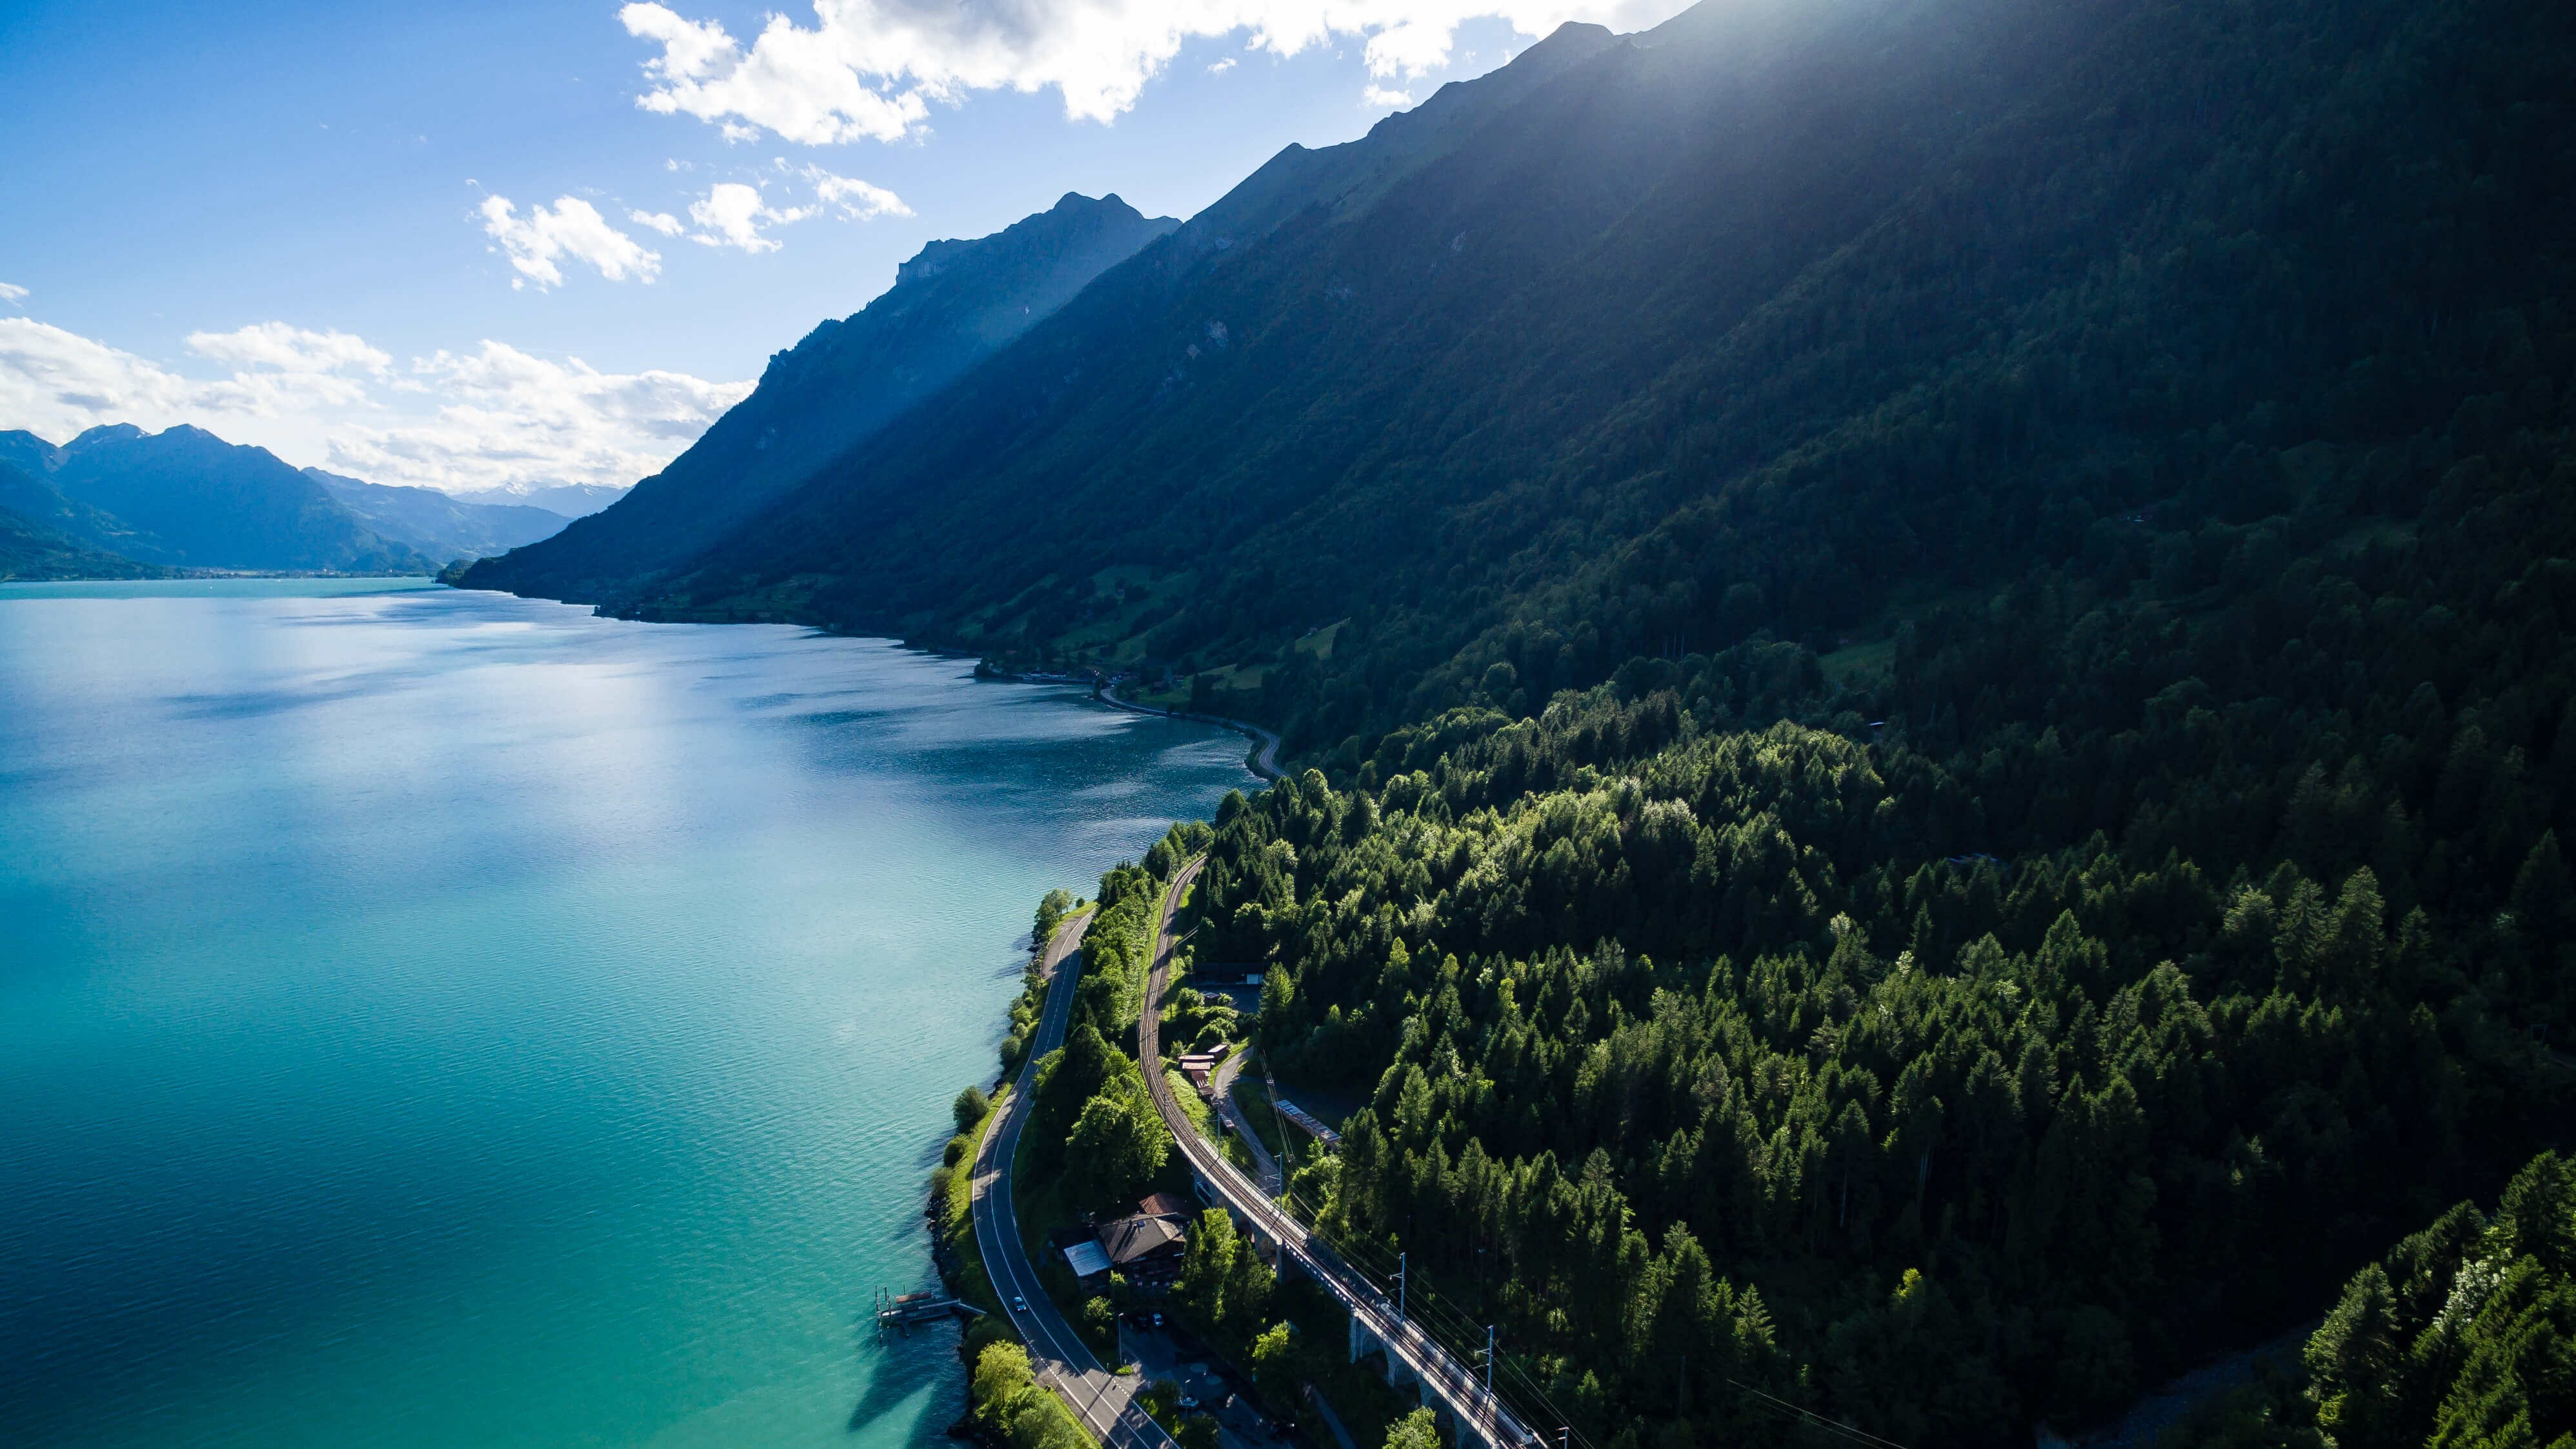 A drone shot of two parallel roads running along the wooded shore of an azure lake